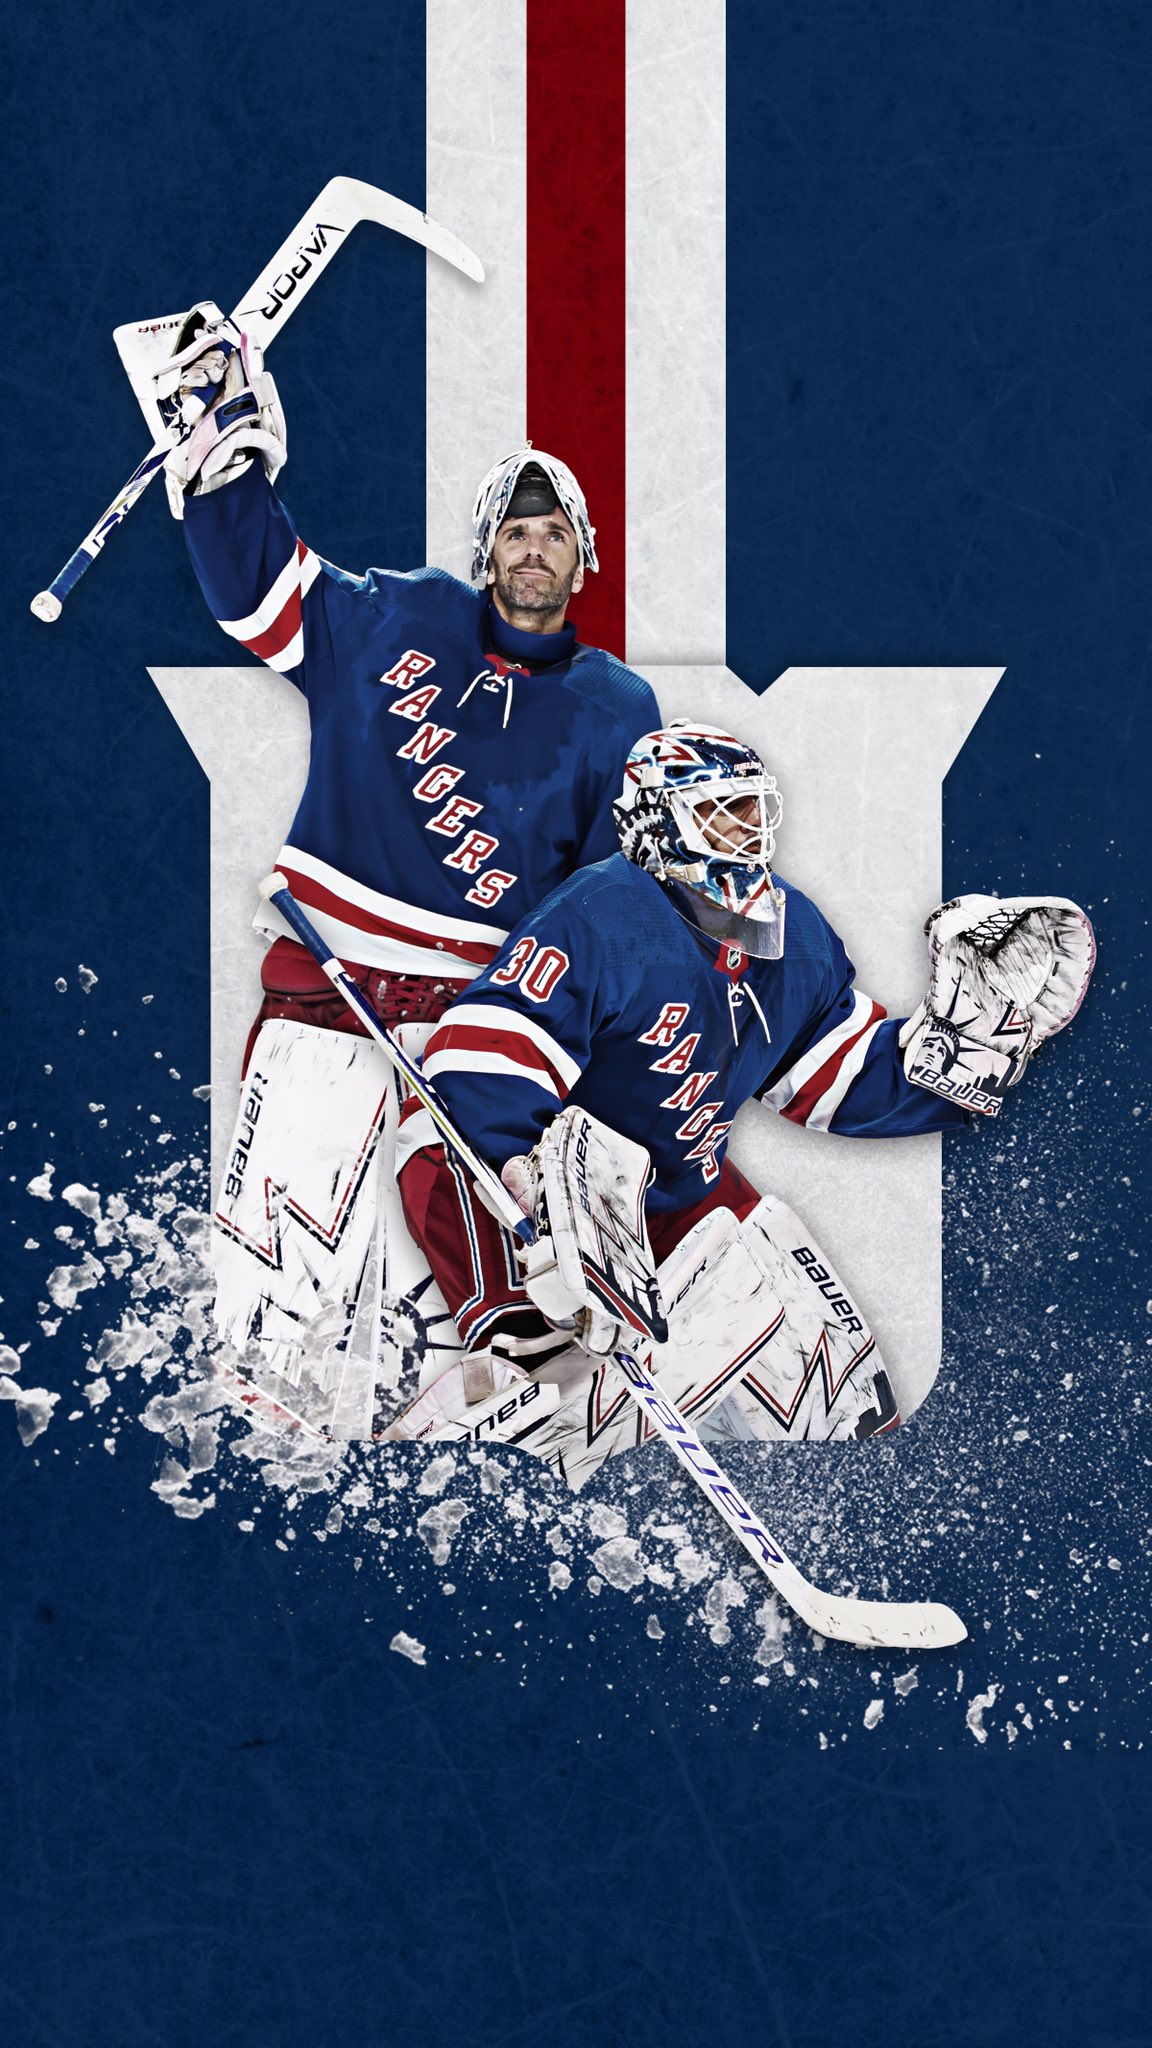 New York Rangers On Twitter It S Nyr Wallpaperwednesday Download This Week S Design Featuring Hlundqvist30 Created By Squarespace Customer And Artist Samantha For More Rangers Wallpapers Https T Co Fq8fowcjxt Https T Co P5xzm6p3an